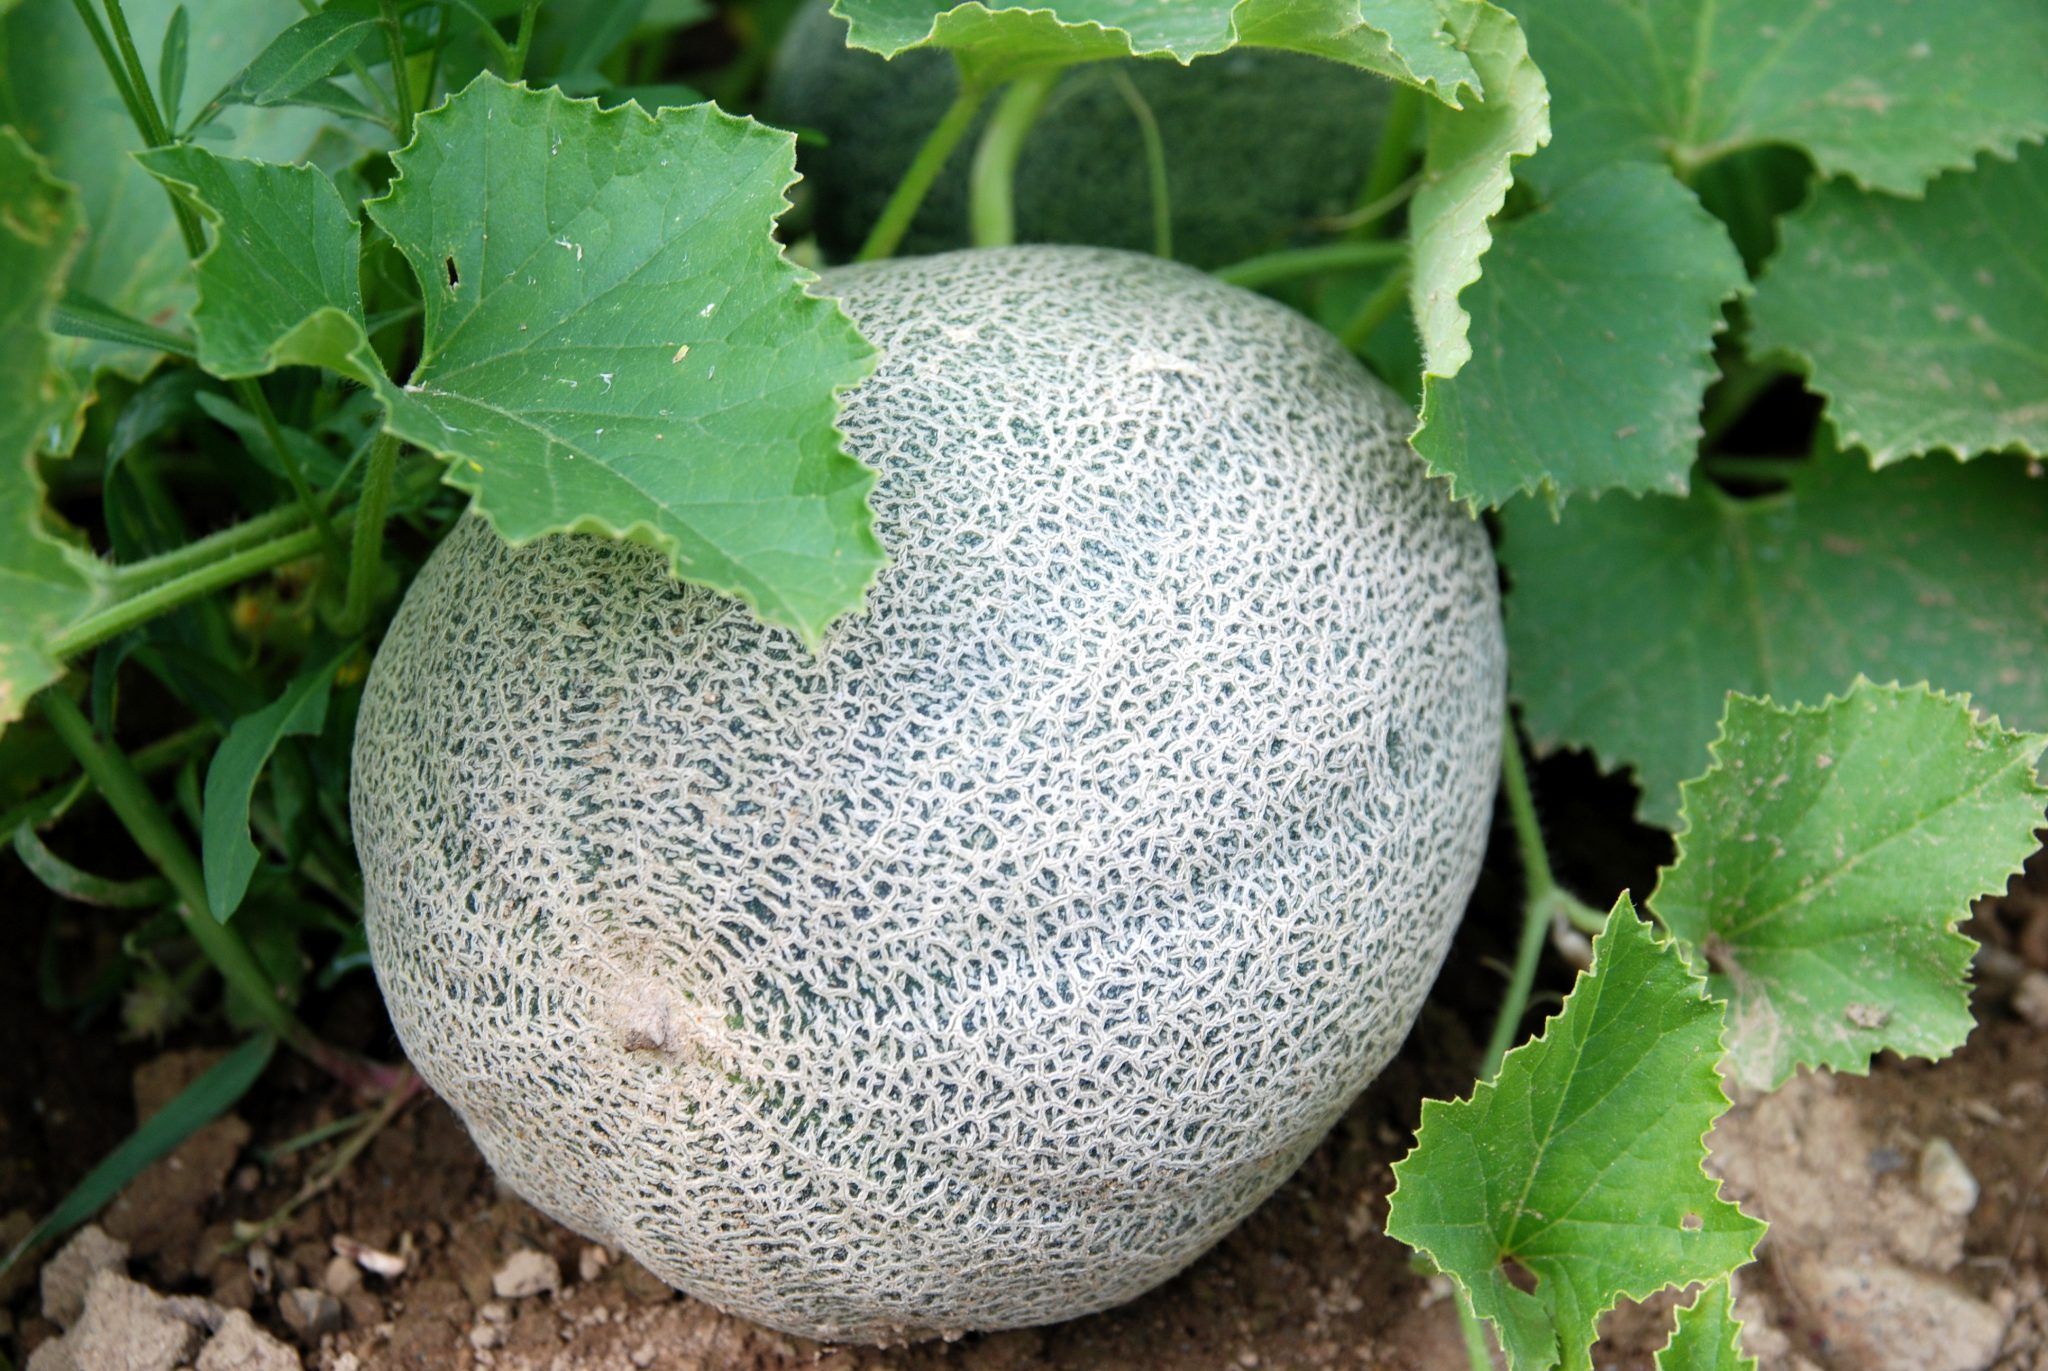 There are several different cover crops management methods cantaloupe growers can utilize in order to maximize production and soil fertility.